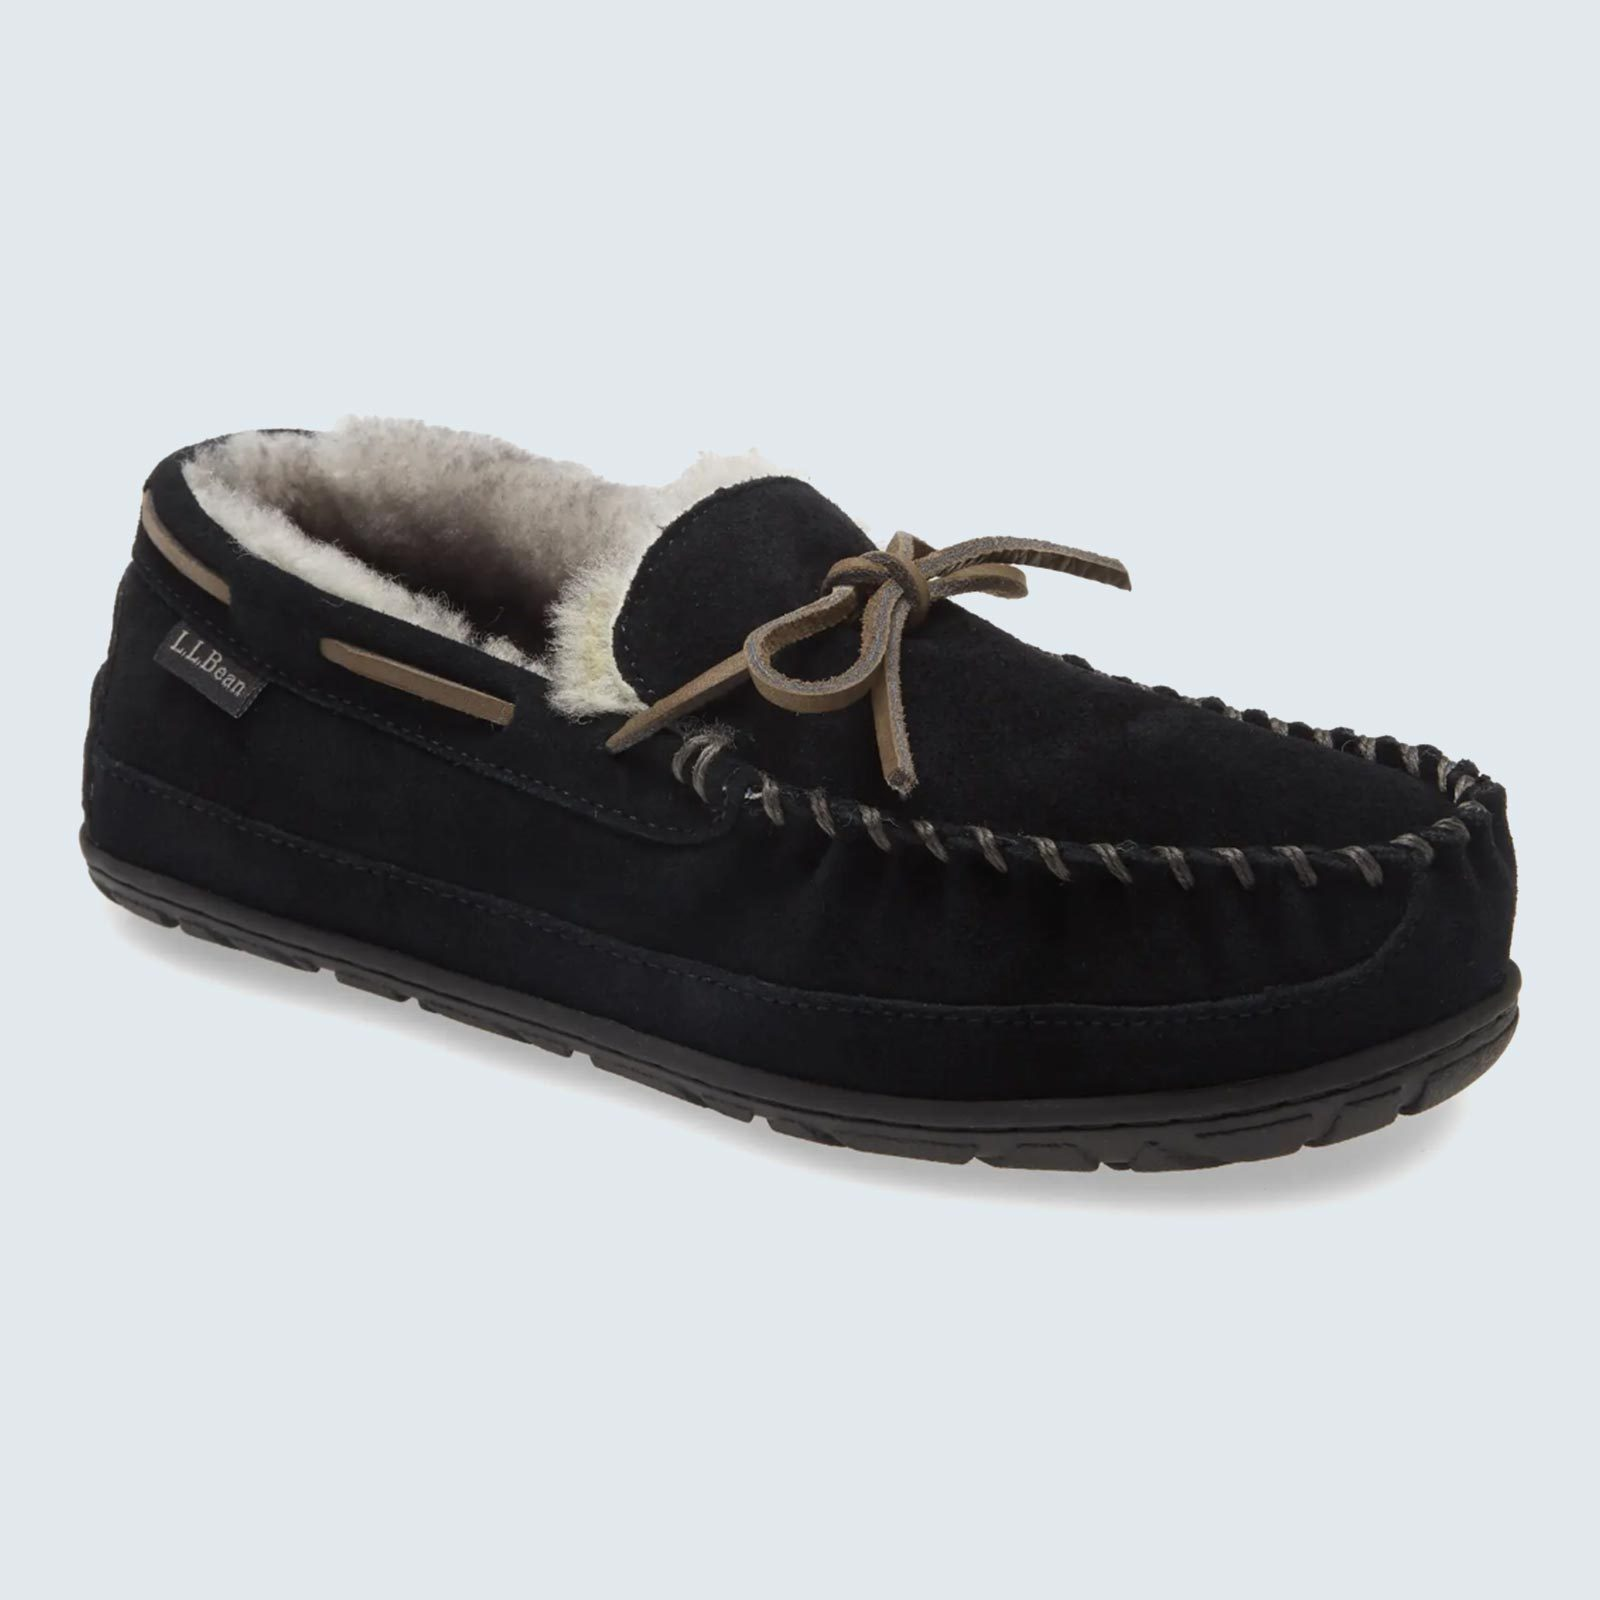 Softest slippers: LL Bean Wicked Good Moccasin